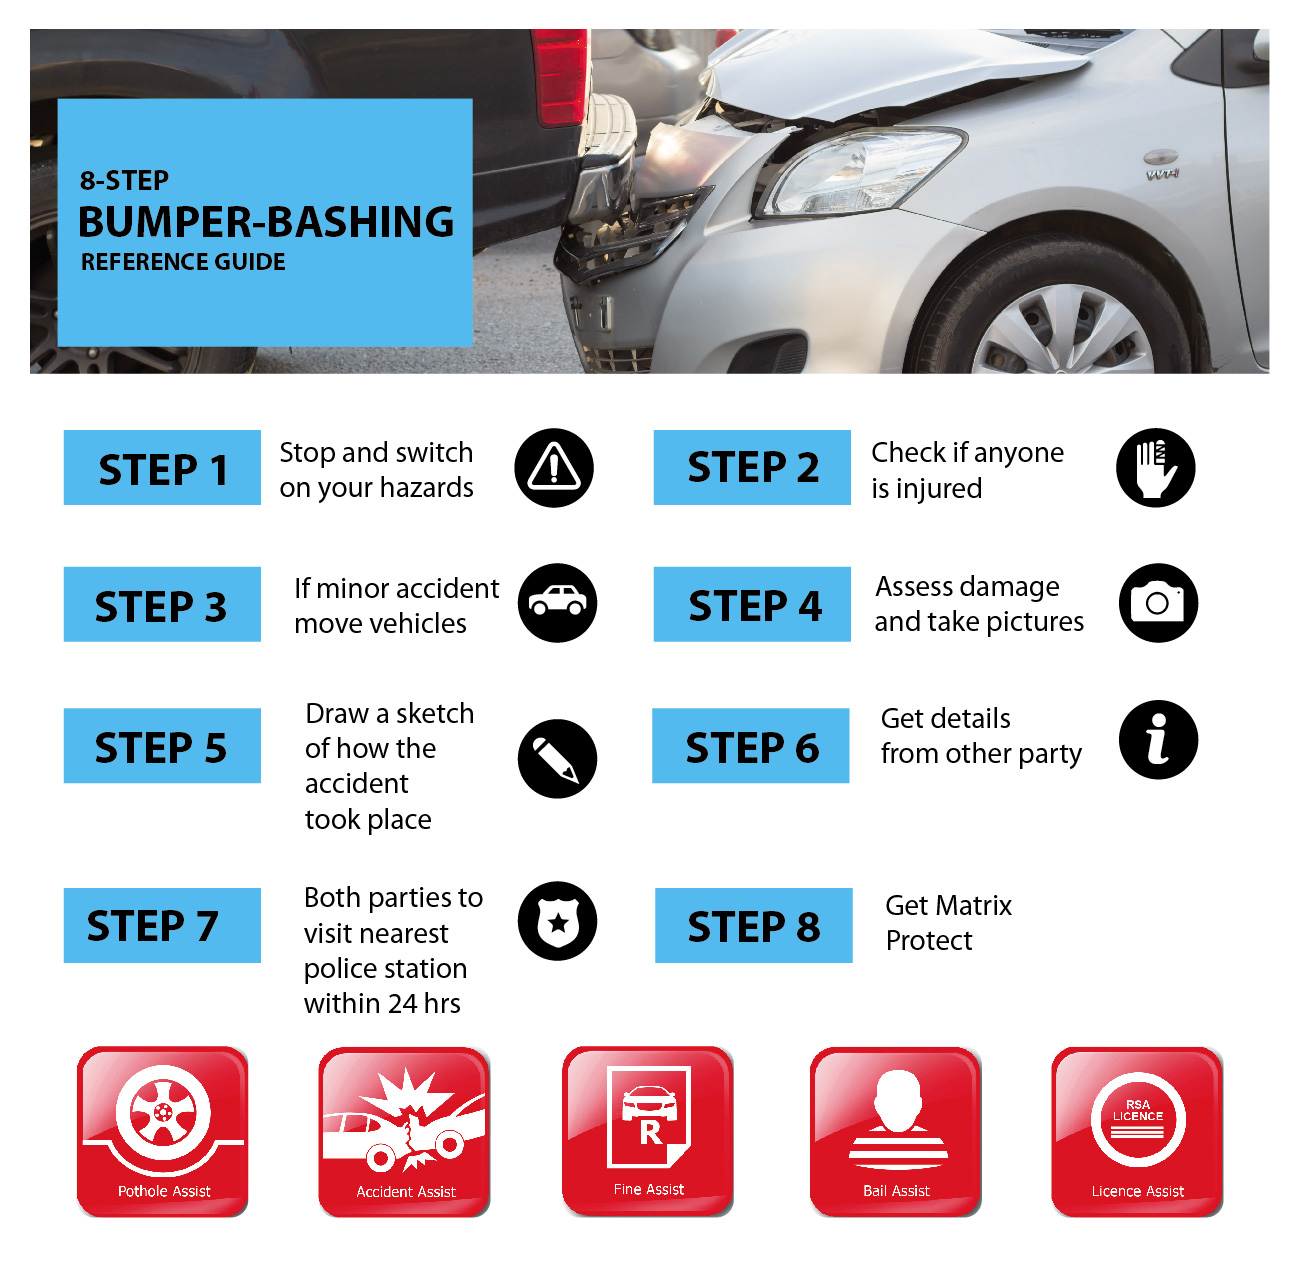 Your 8-step bumper-bashing reference guide | Car Insurance